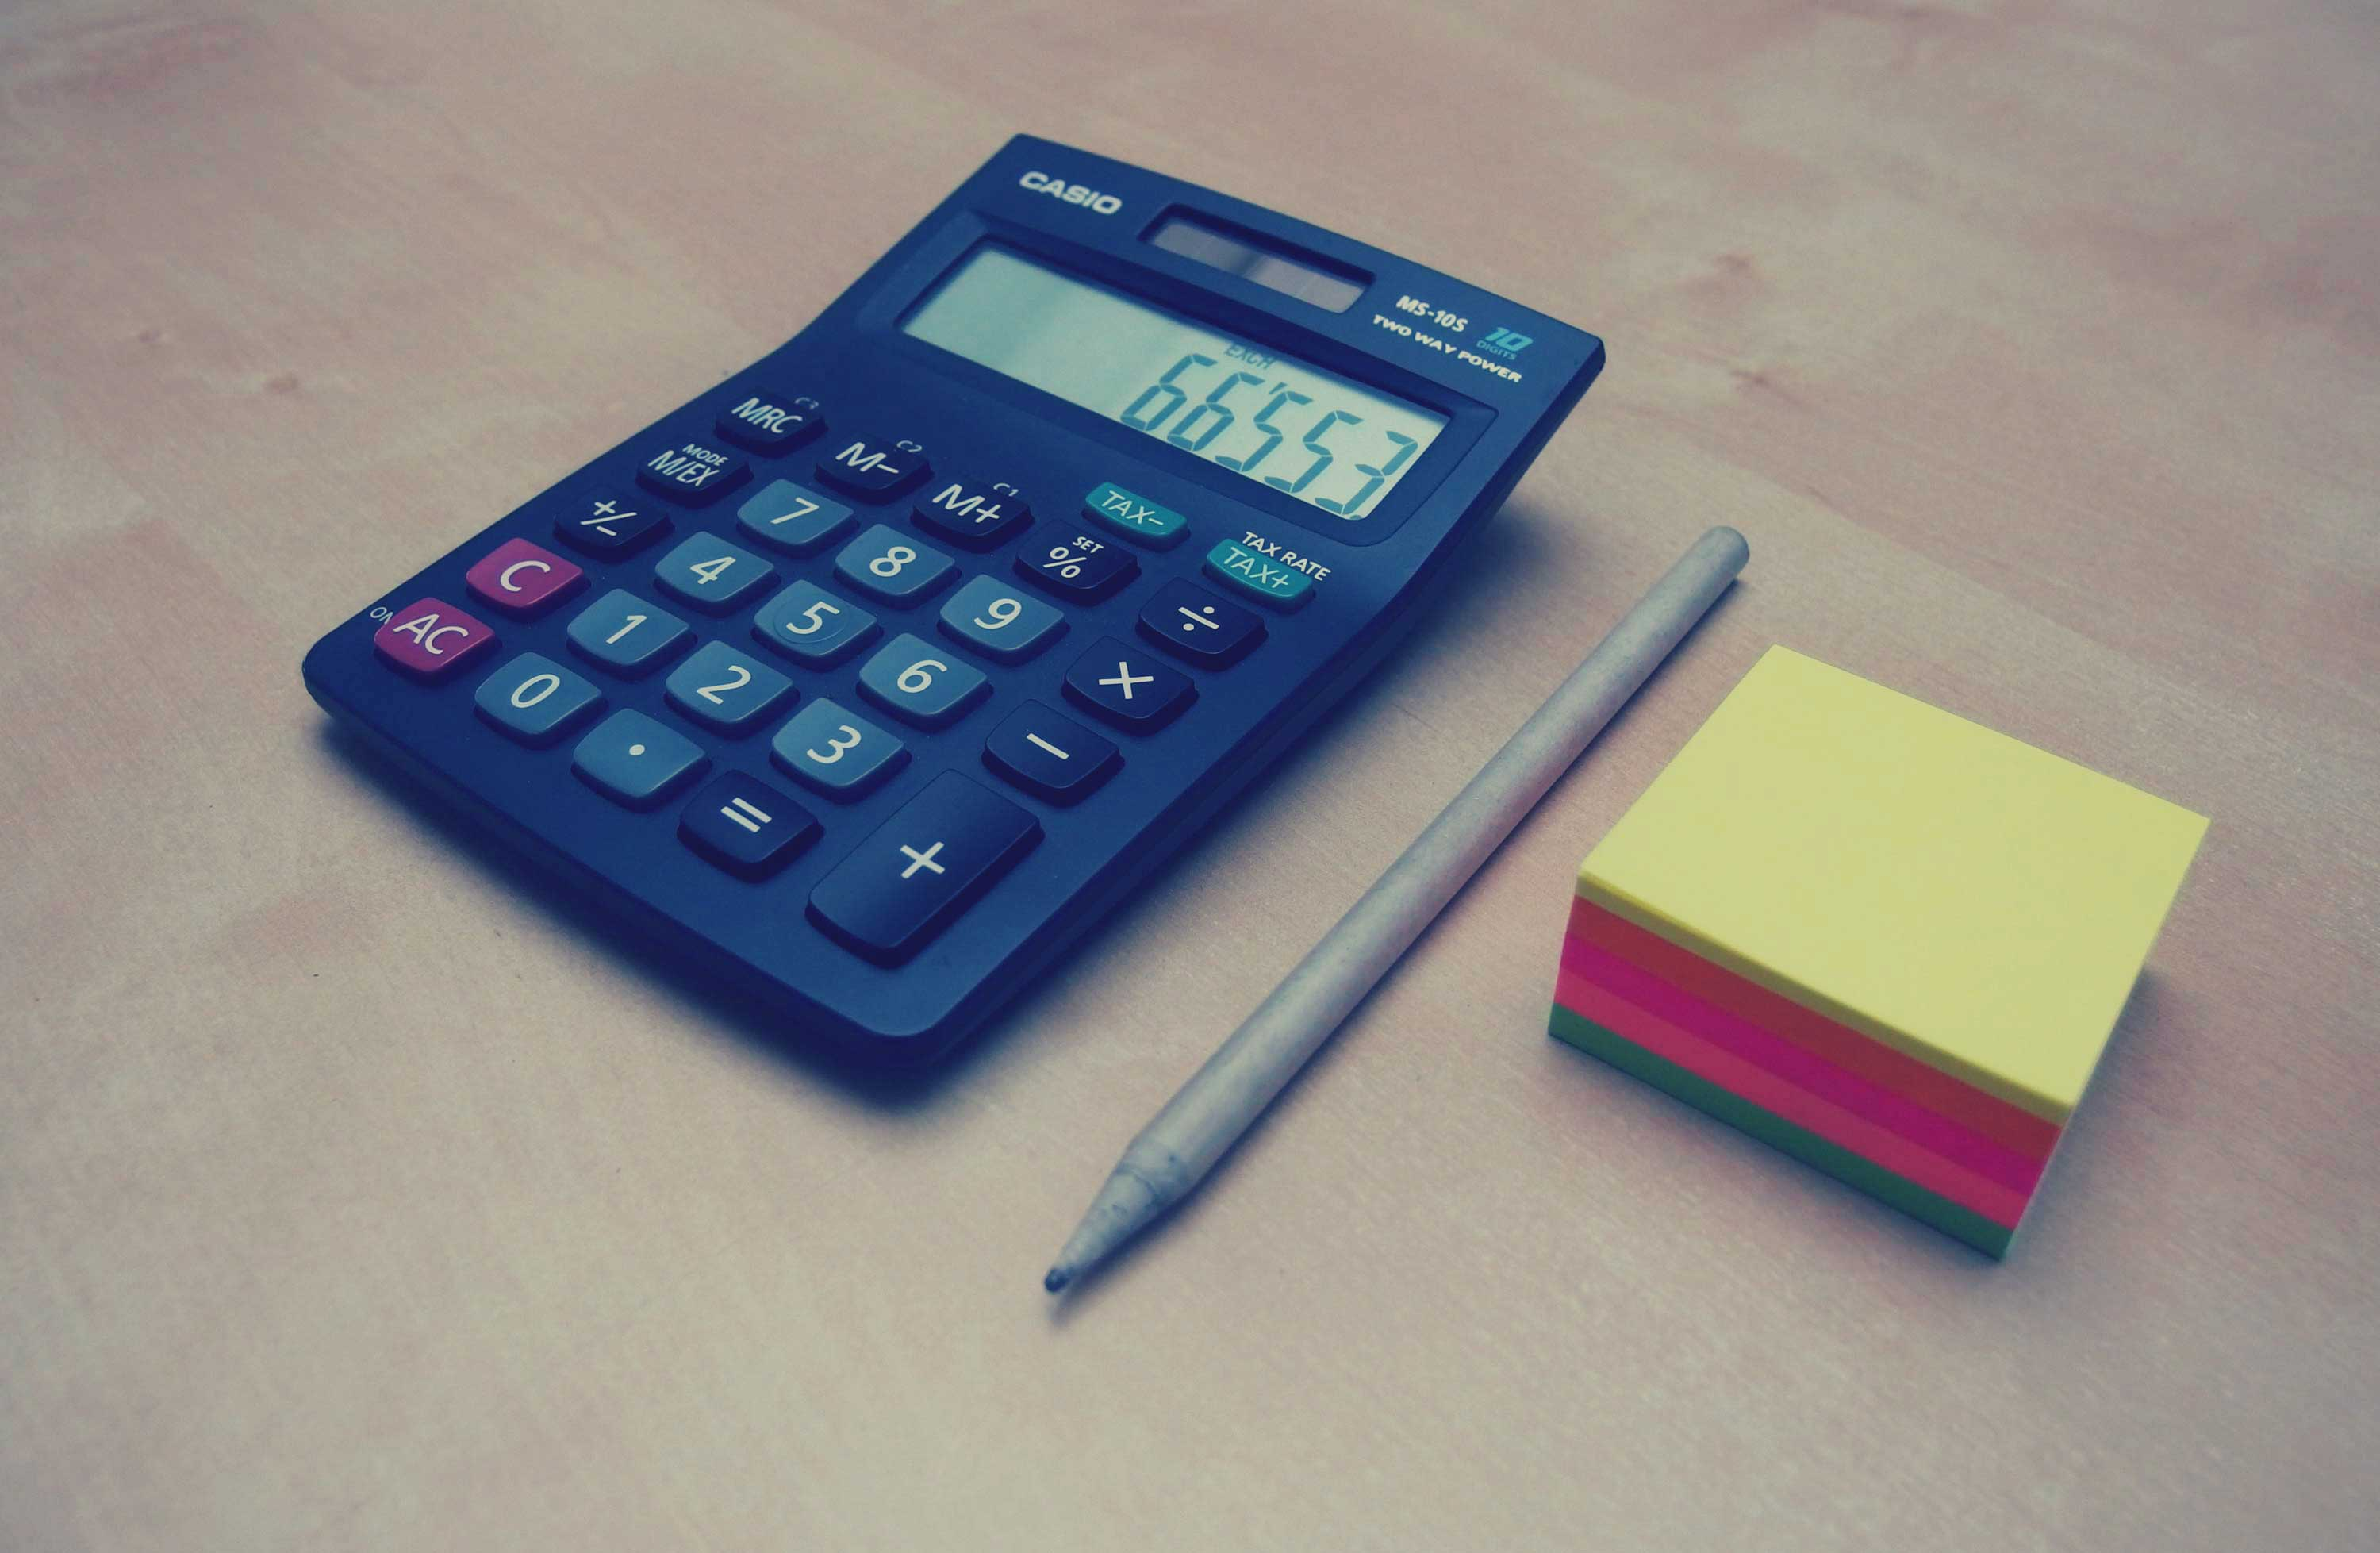 A calculator and stationery to symbolise the importance of calculating the rates of one's mortgage